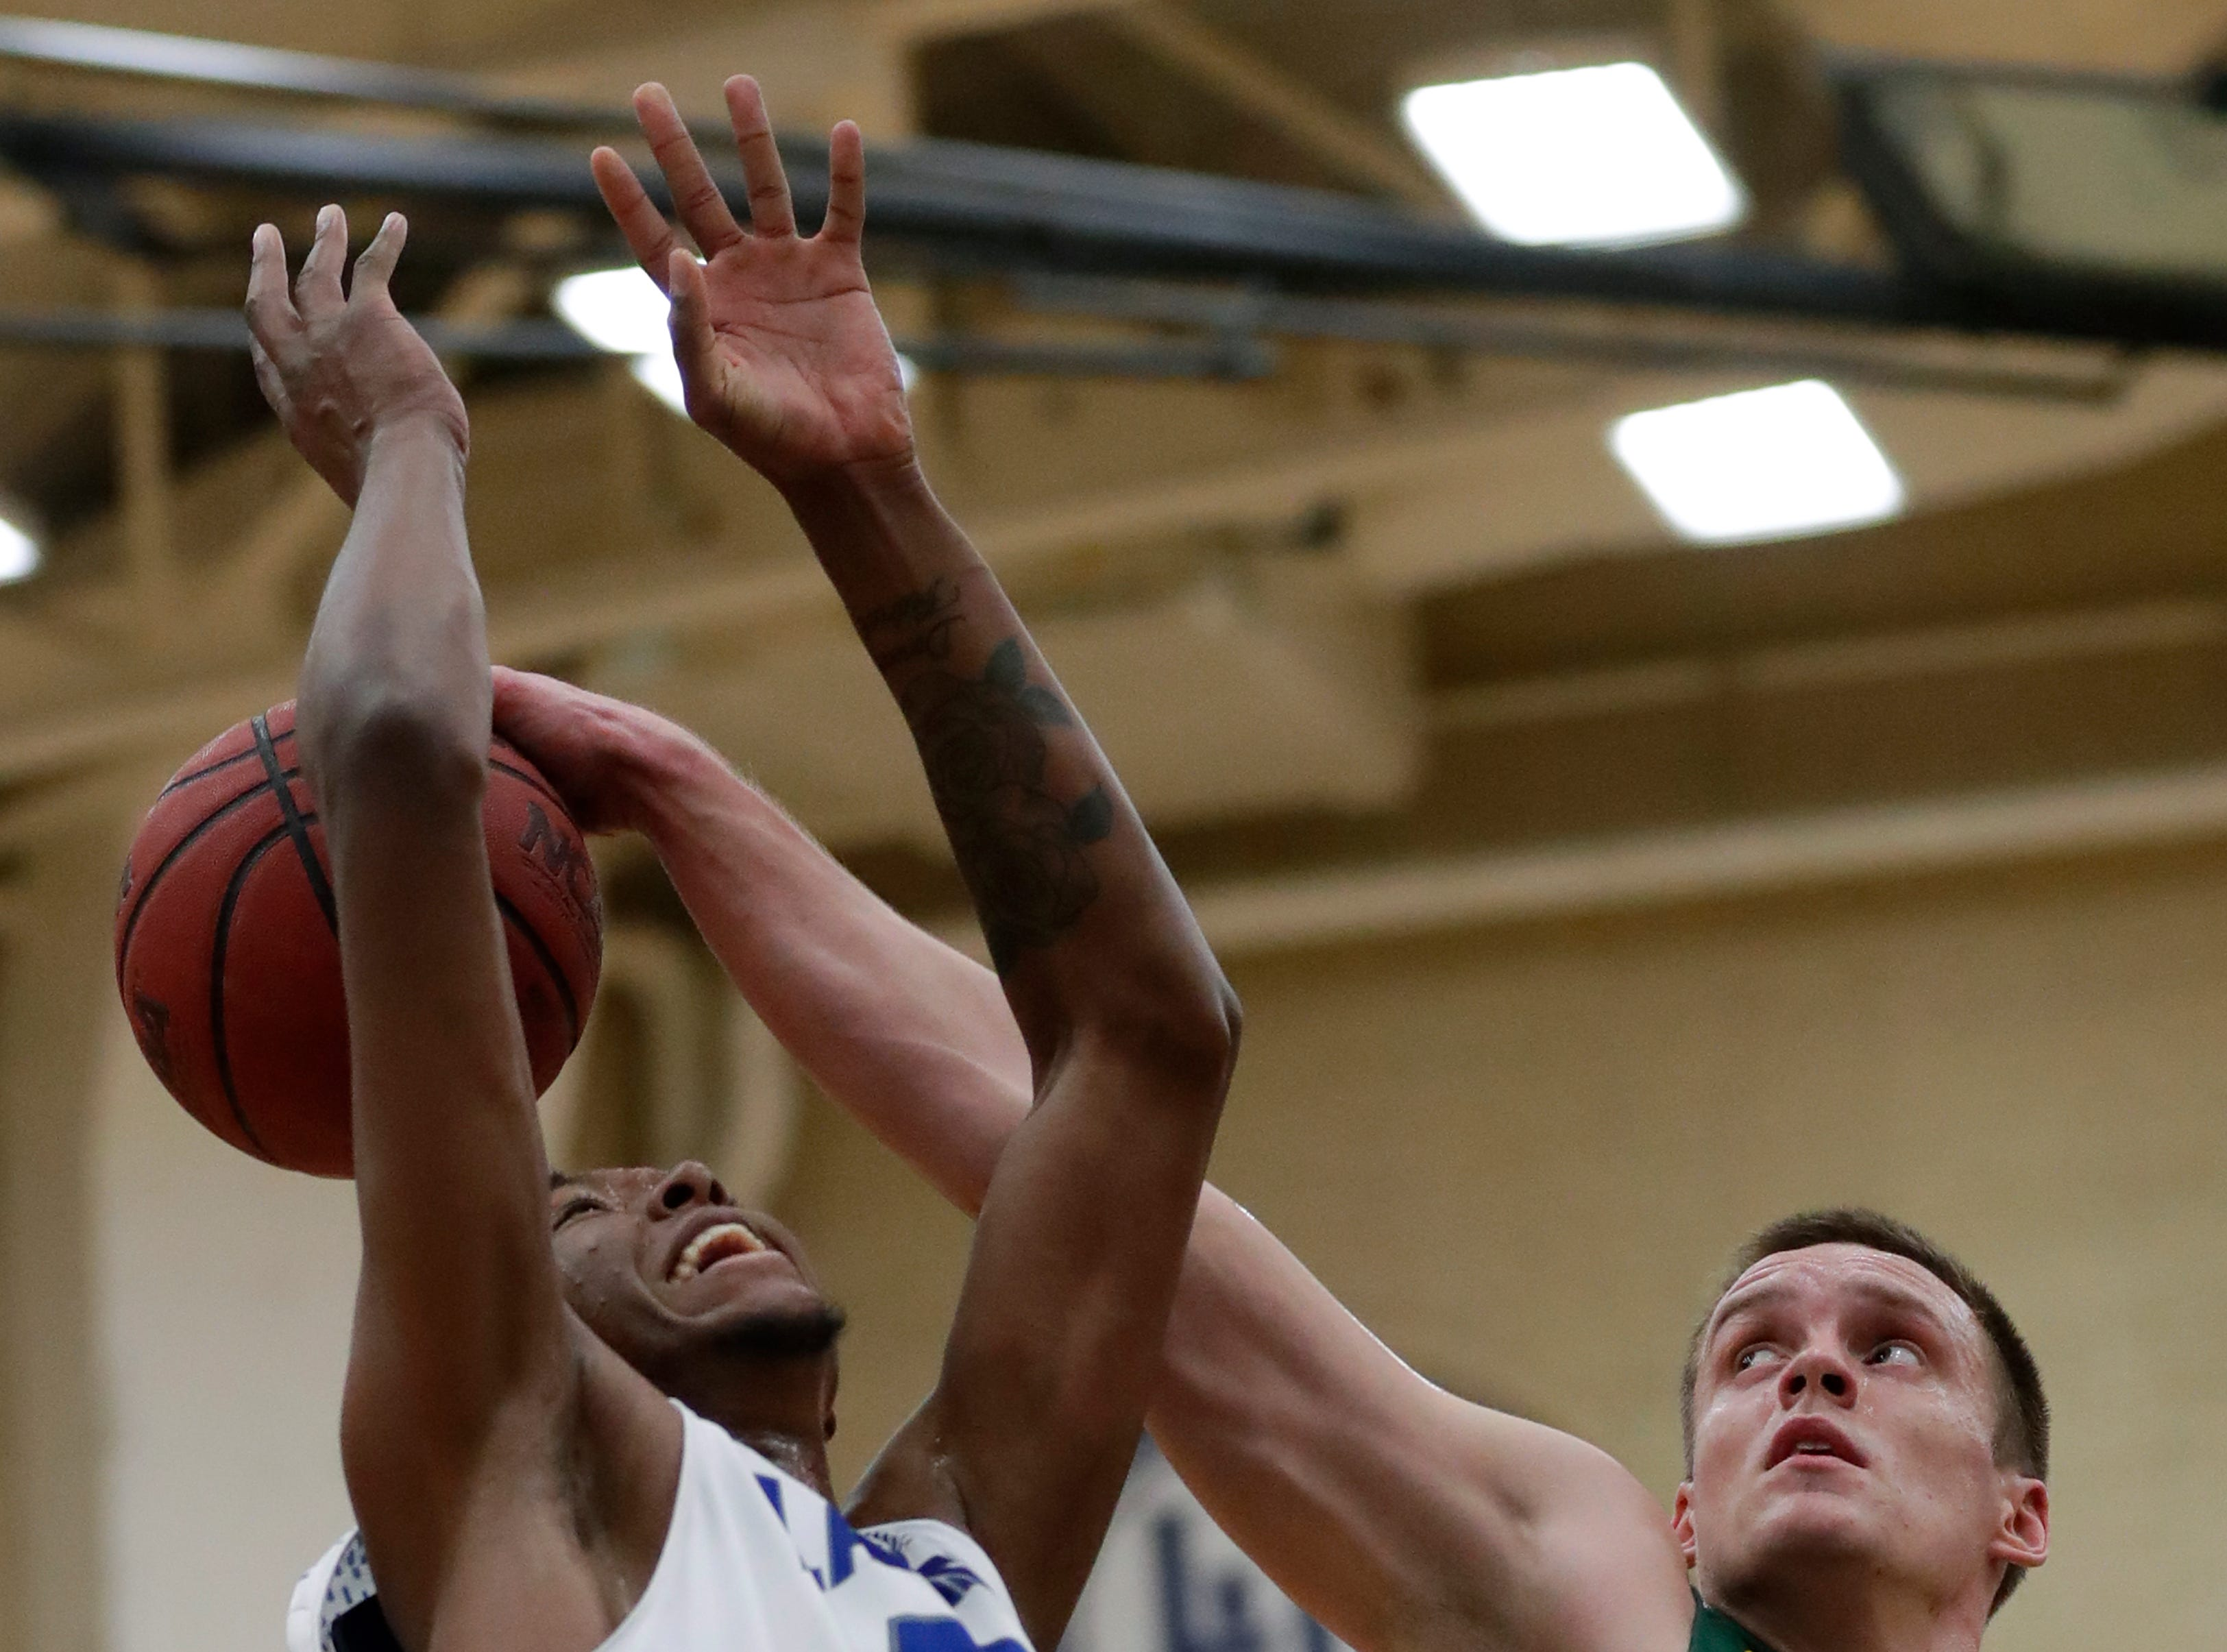 Lawrence University's Bryce Denham (23) is fouled as he puts up a shot against St. Norbert College's Joe Lemon (52) during their men's basketball game Thursday, January 31, 2019, at Alexander Gymnasium in Appleton, Wis. 